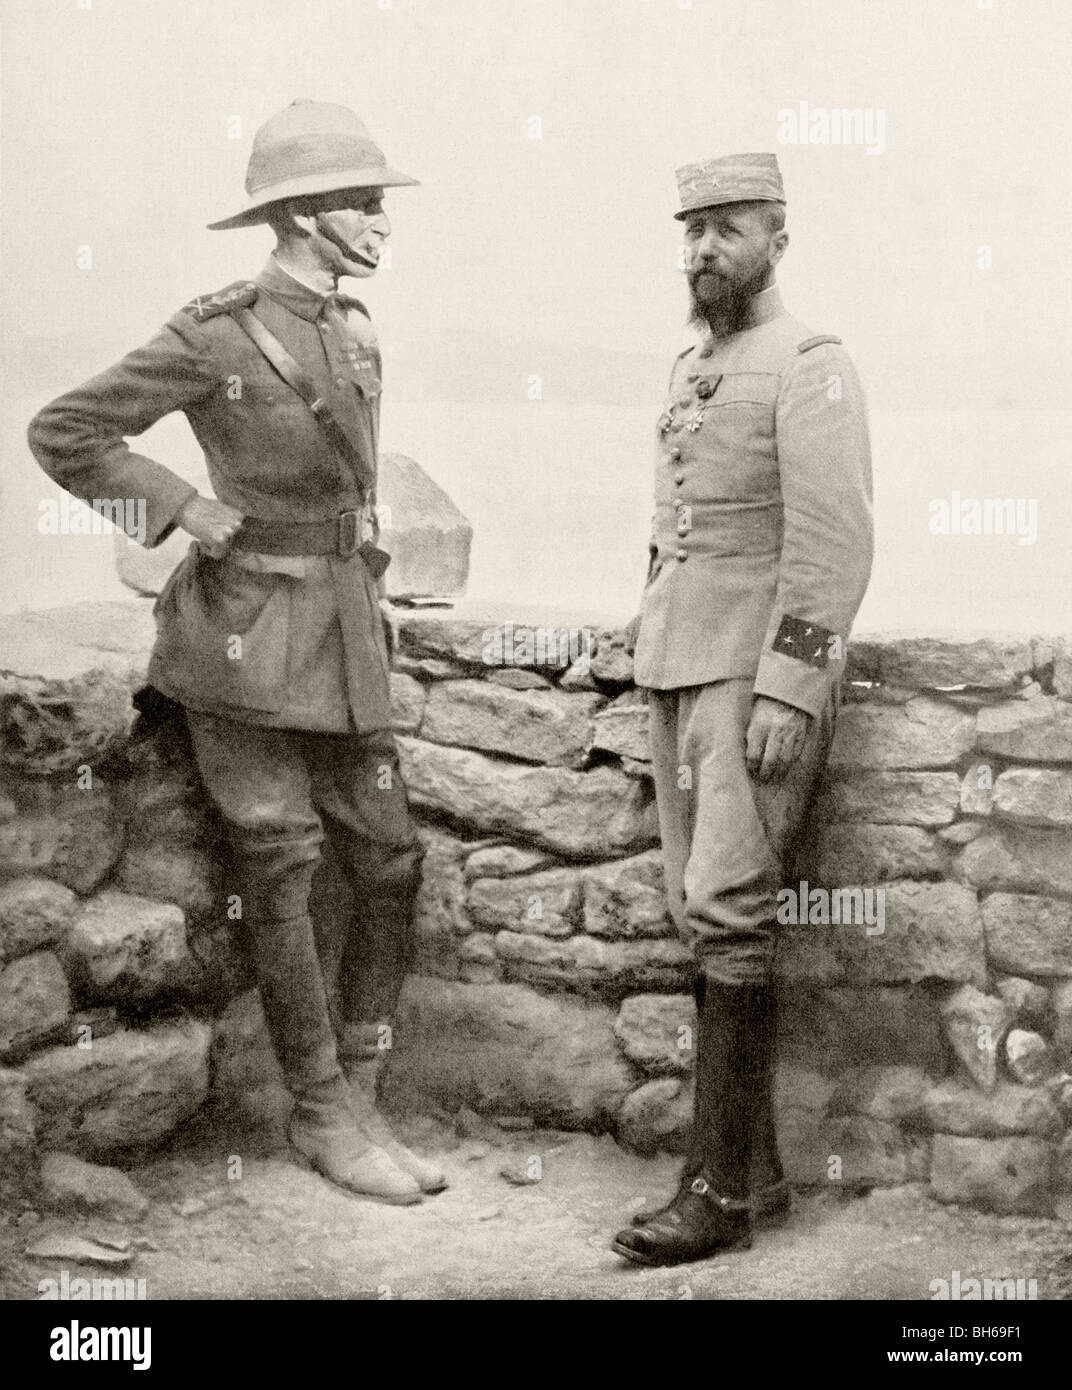 English General Sir Ian Hamilton (left) and French General Henri Gouraud (right) meet during the Dardenelles Campaign - Stock Image